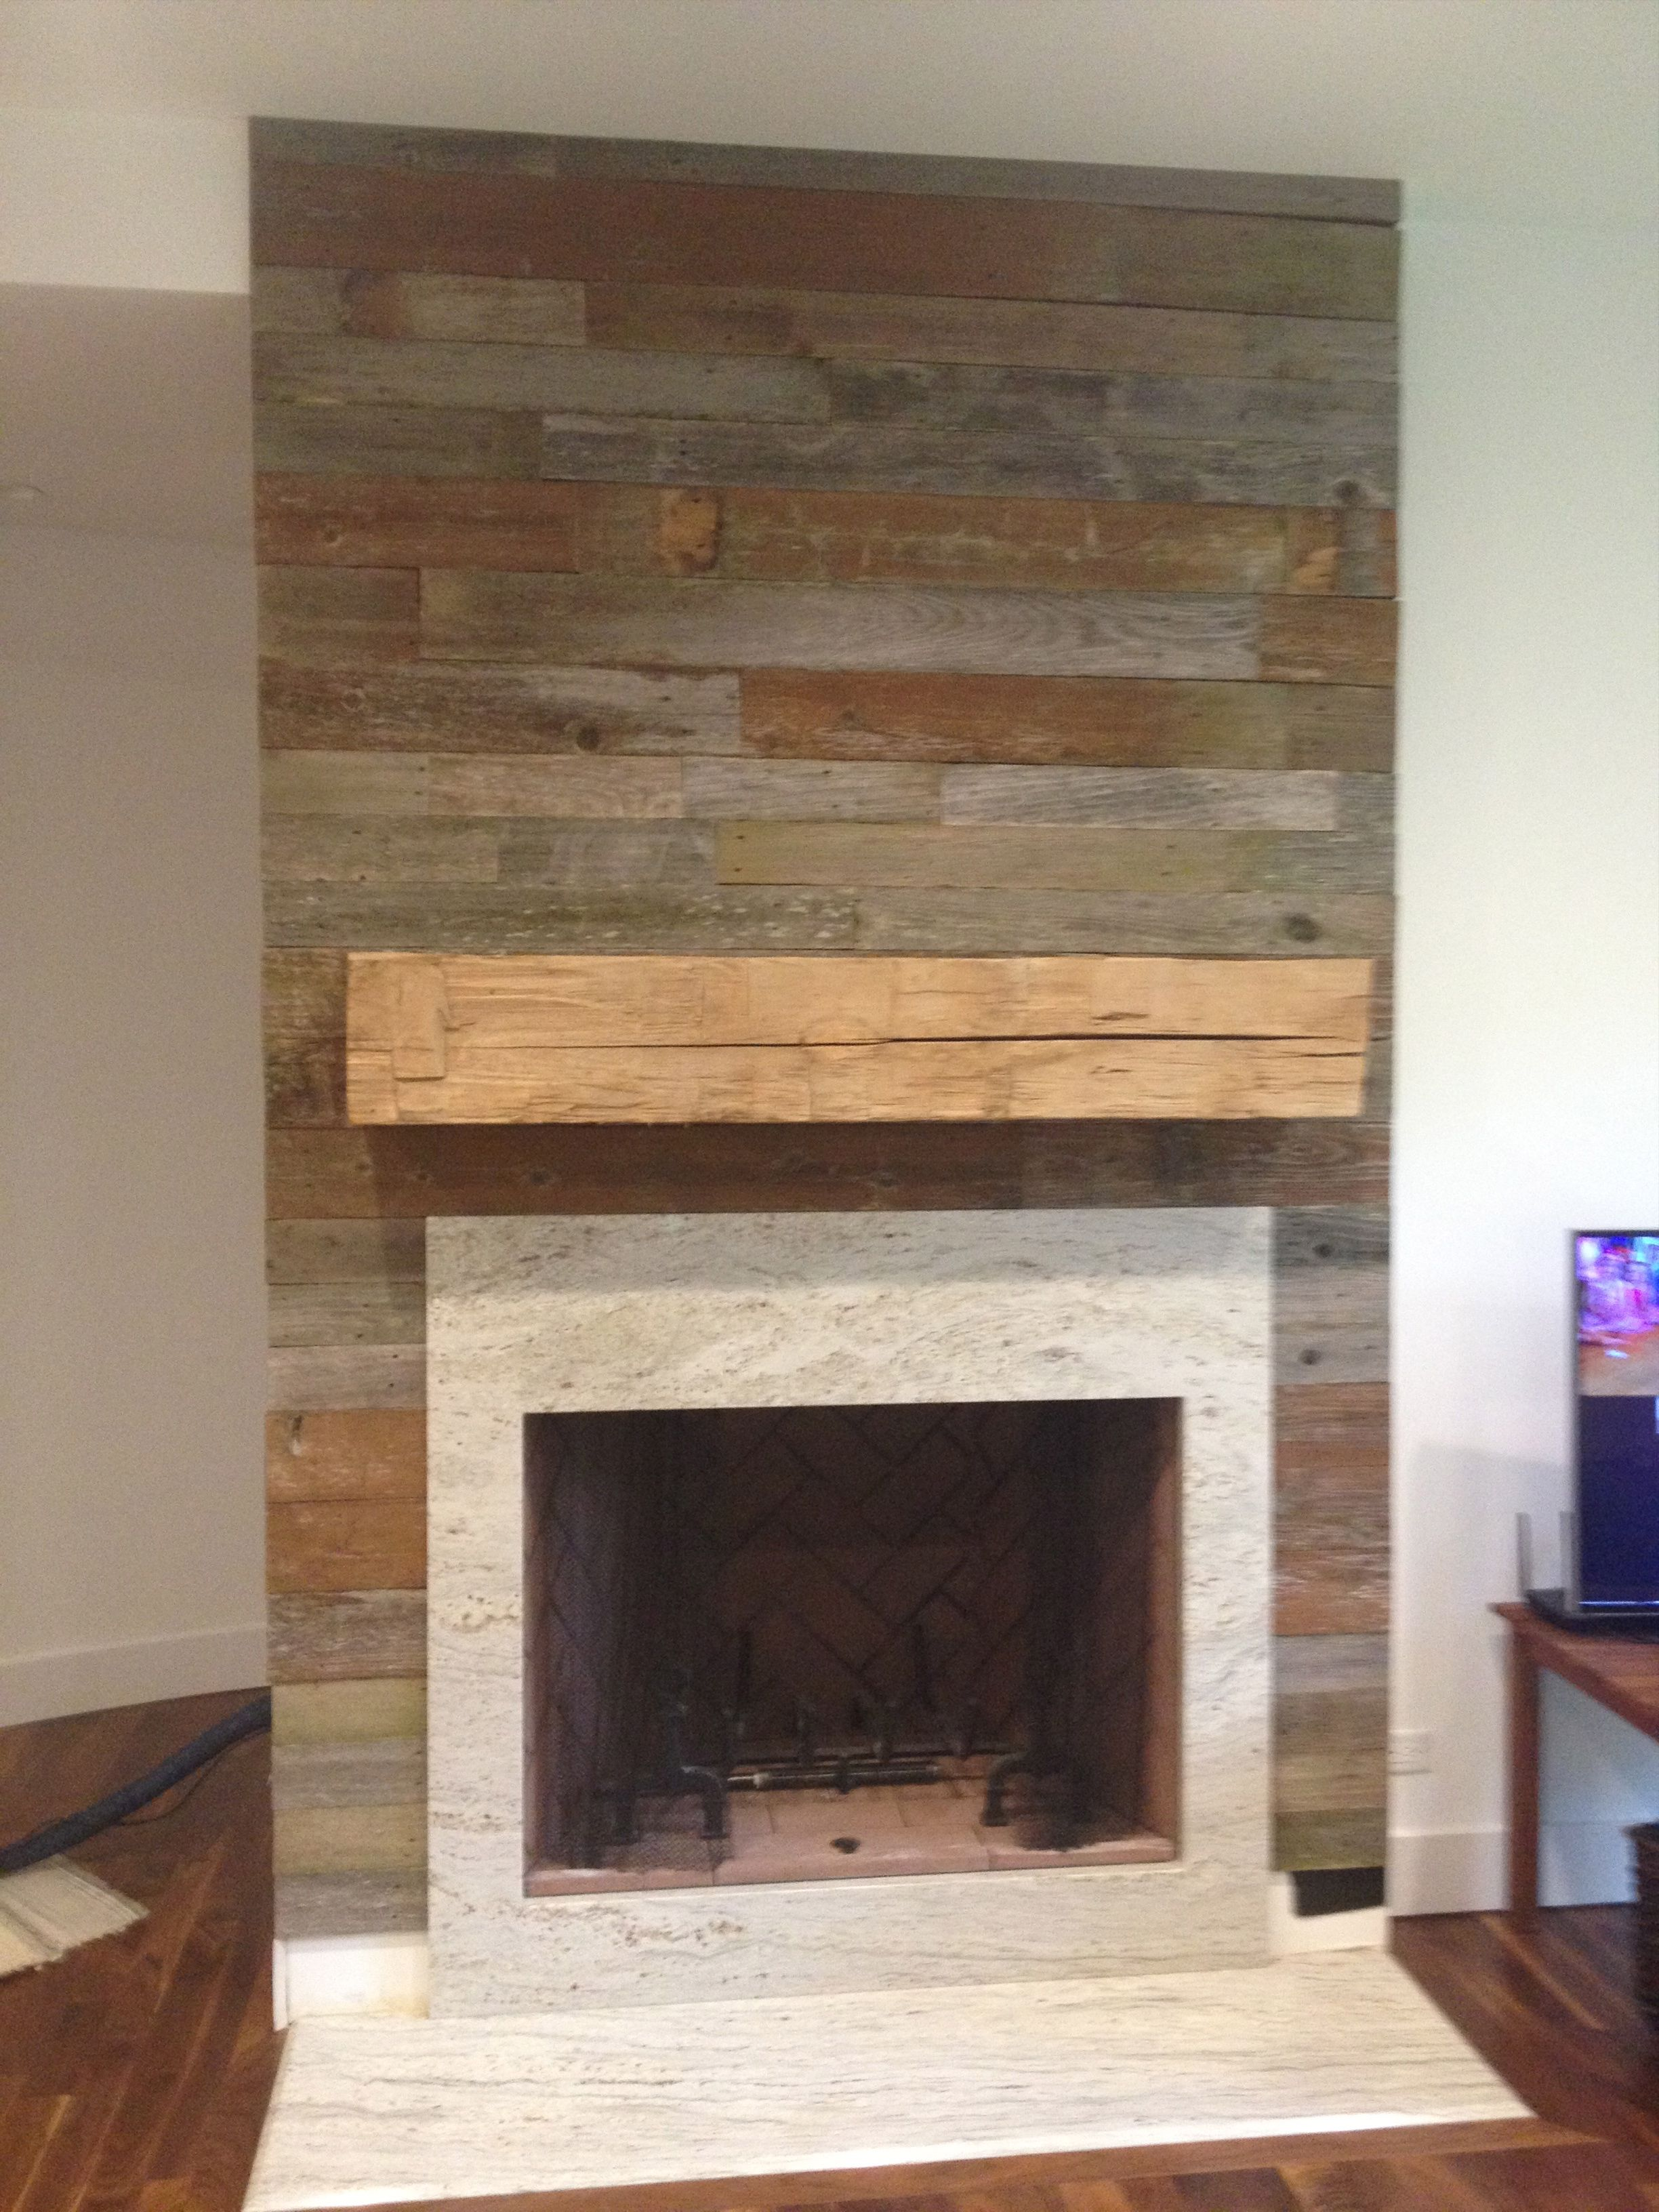 Wood fireplace and Fireplace surrounds